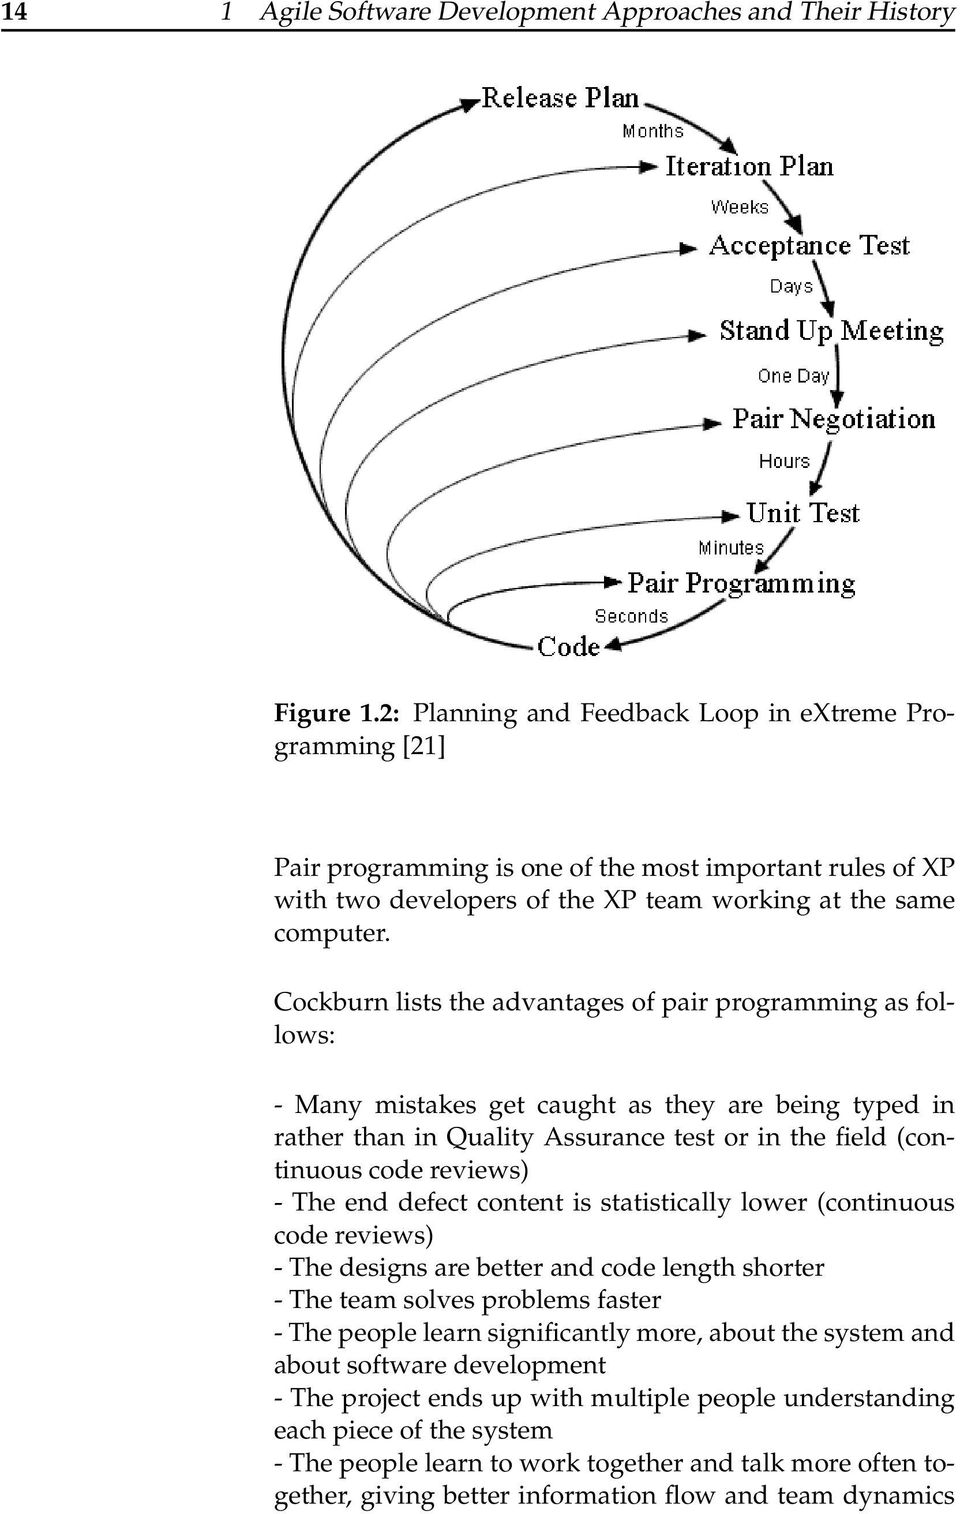 Cockburn lists the advantages of pair programming as follows: - Many mistakes get caught as they are being typed in rather than in Quality Assurance test or in the field (continuous code reviews) -